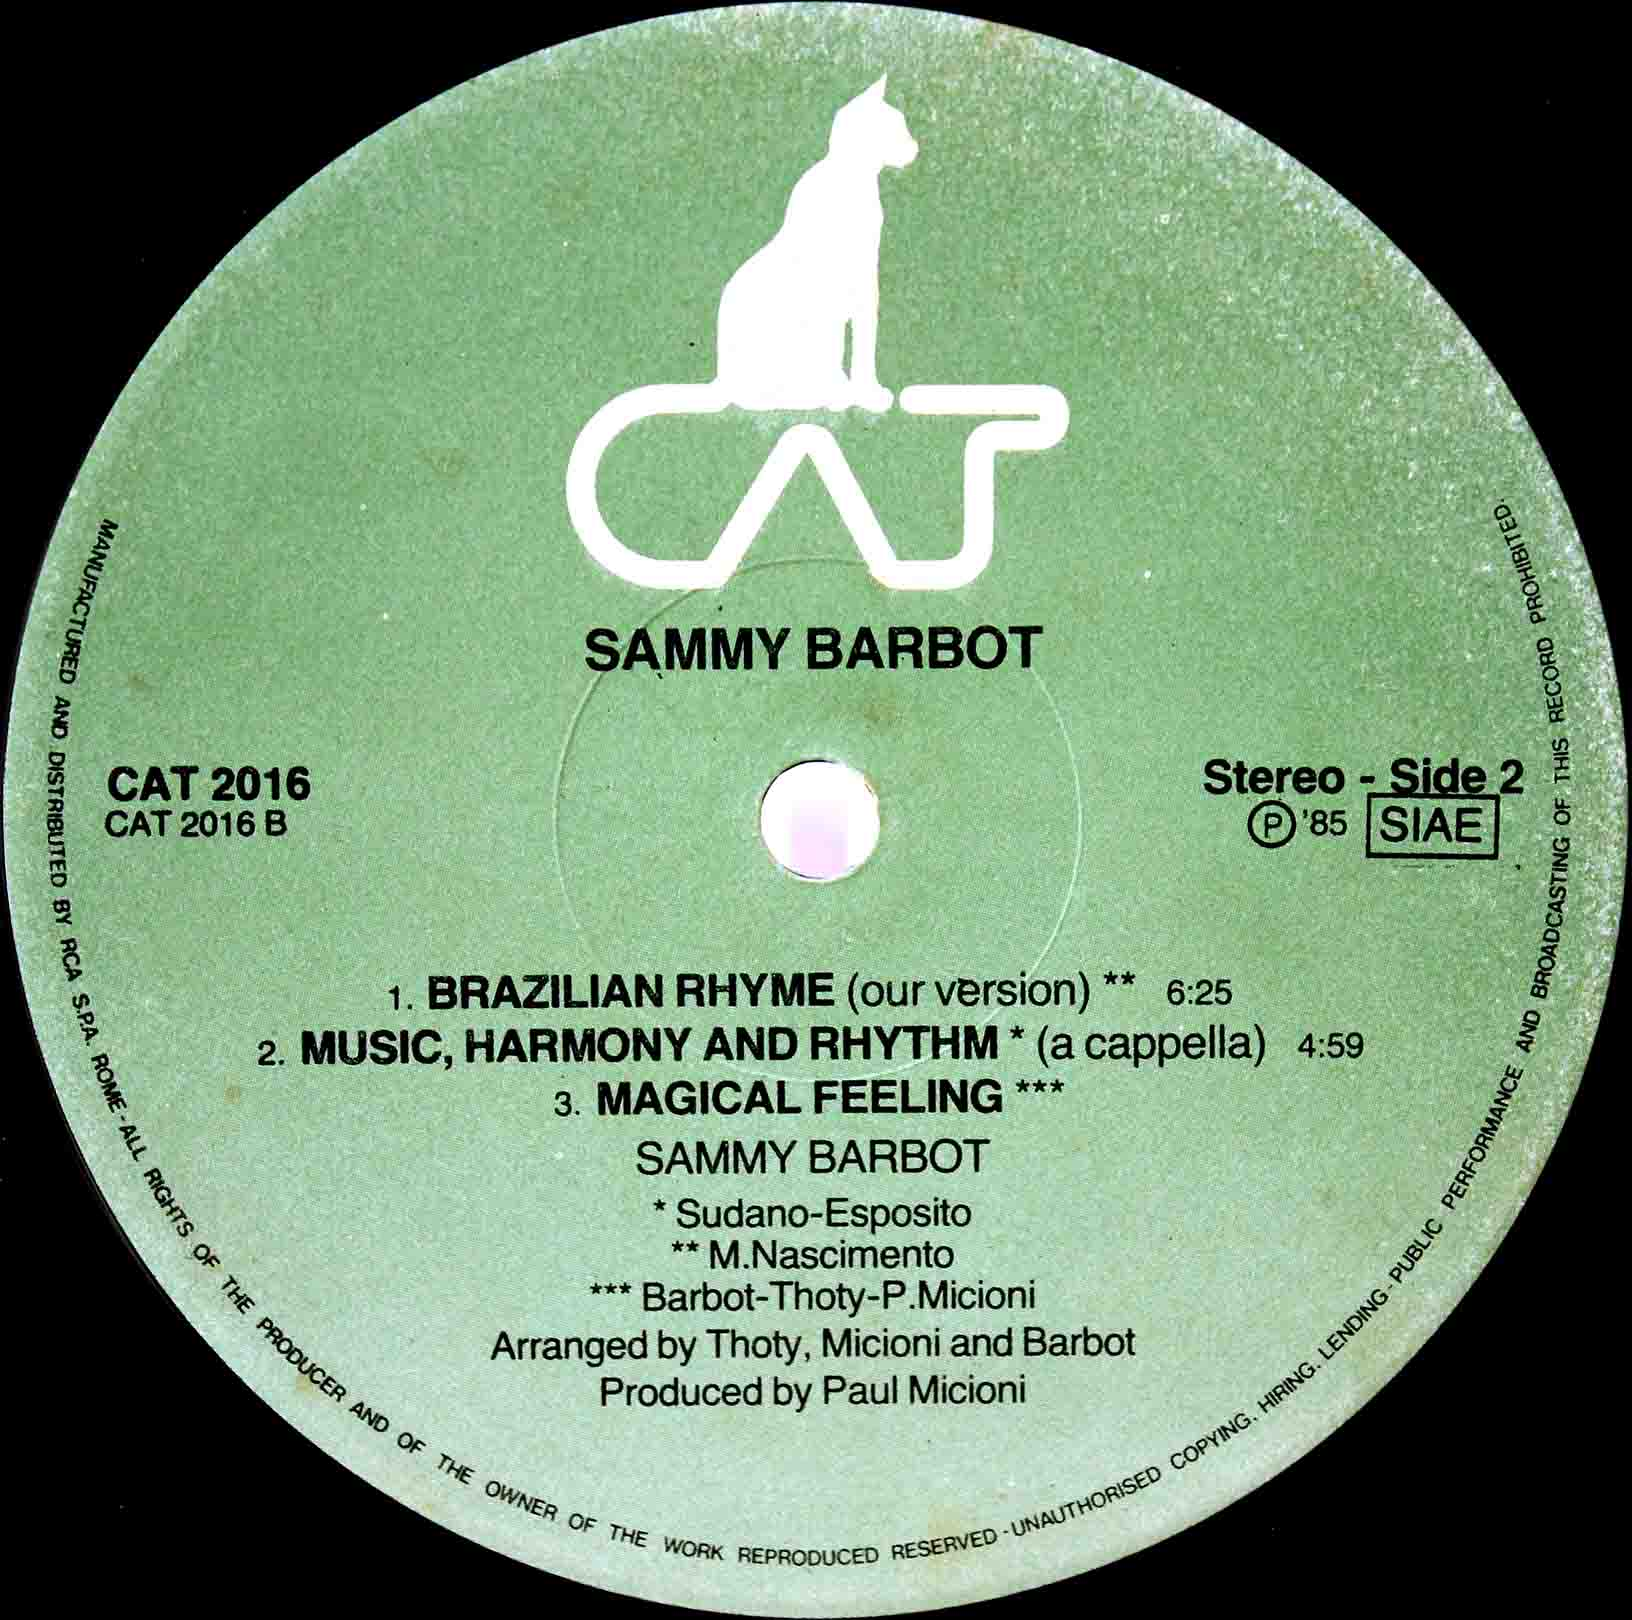 Sammy Barbot ‎– Music, Harmony And Rhythm 04